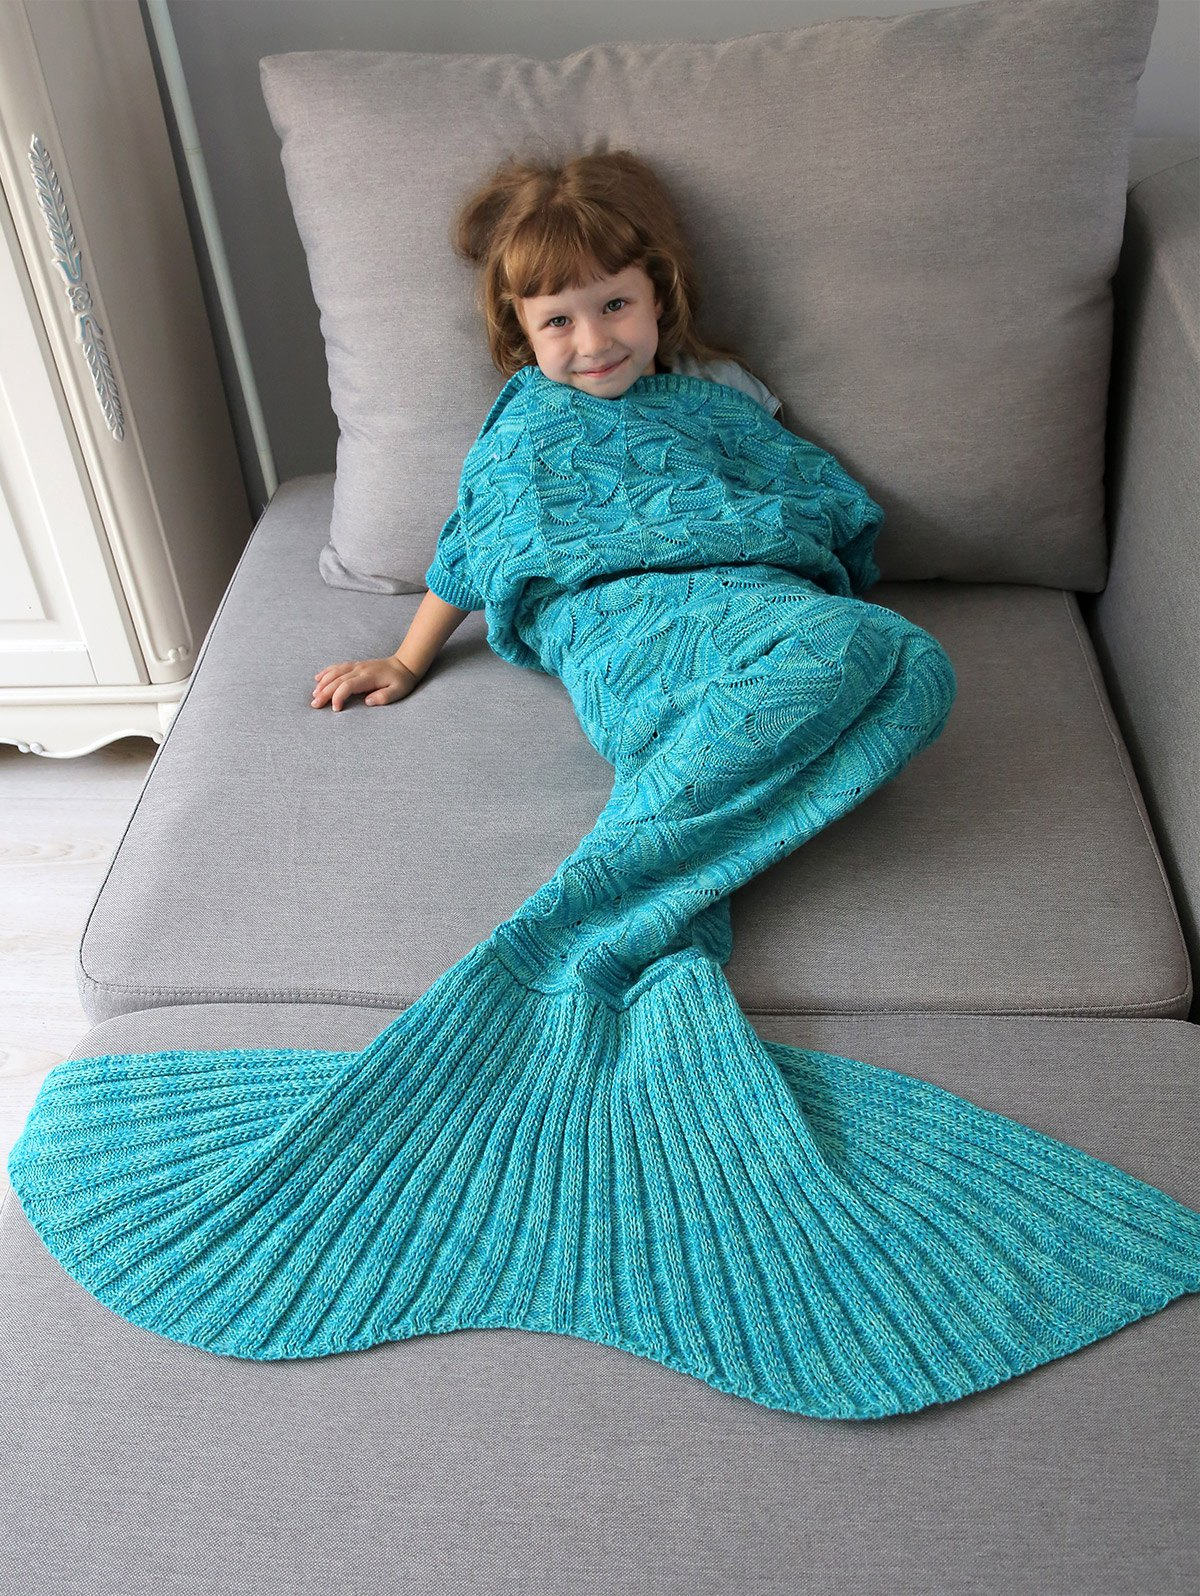 Spiral Algae Crochet Knit Mermaid Blanket Throw For Kids - OCEAN BLUE